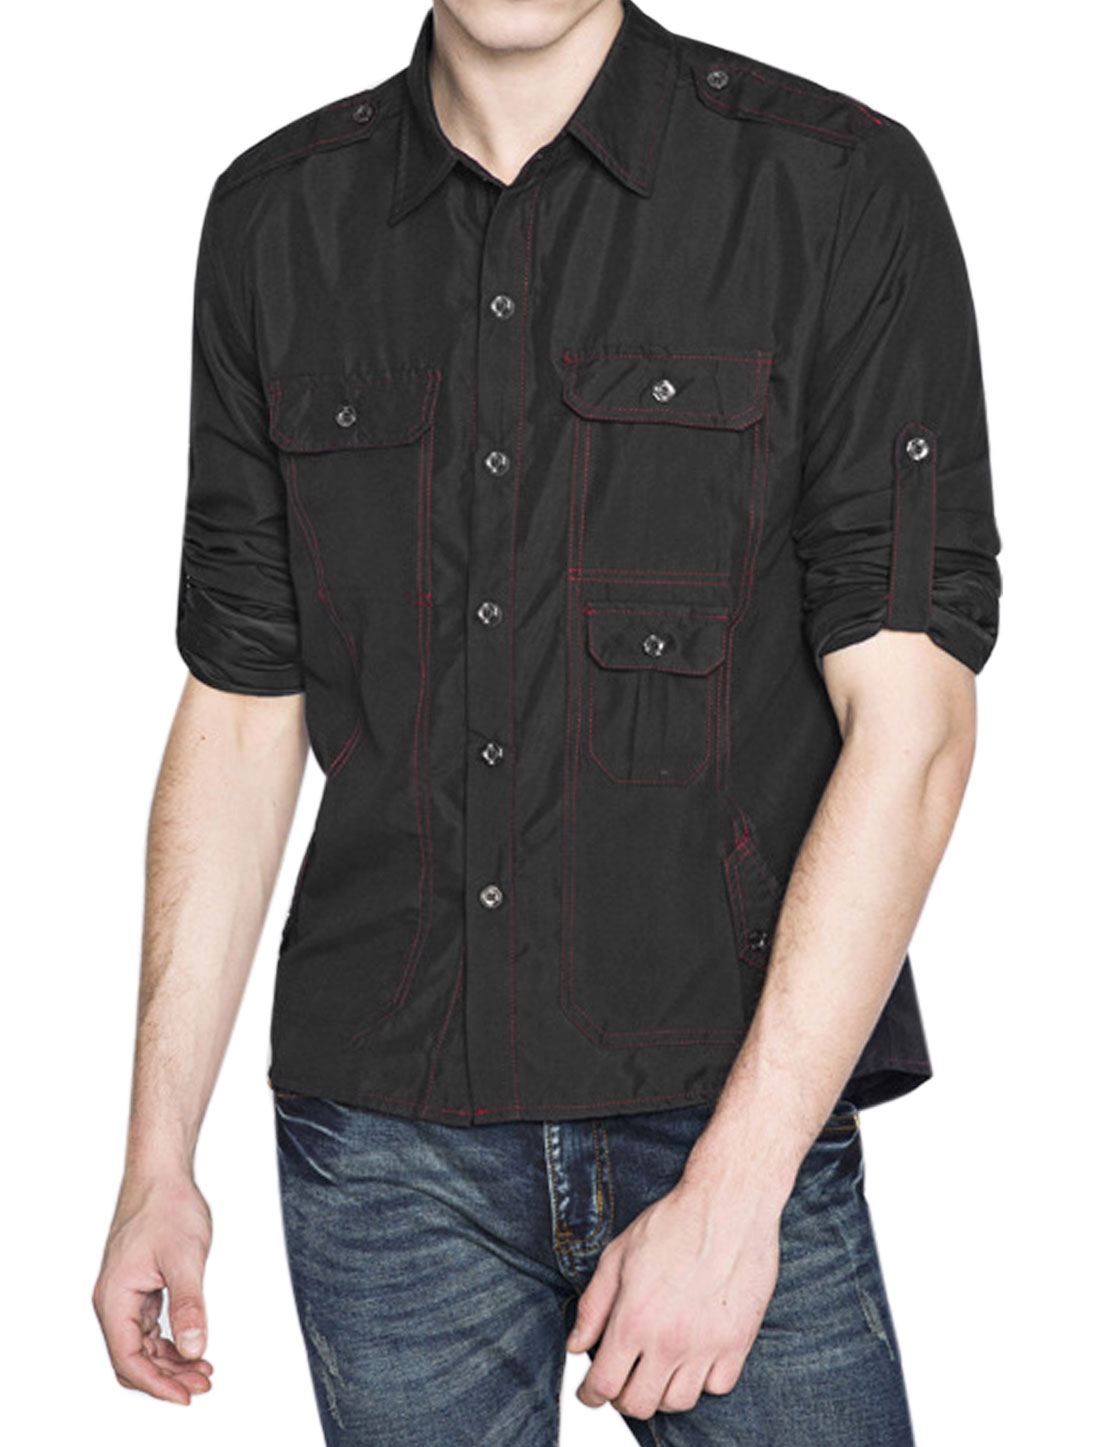 Men Point Collar Rolled Up Sleeves Five Pockets Casual Shirt Black M